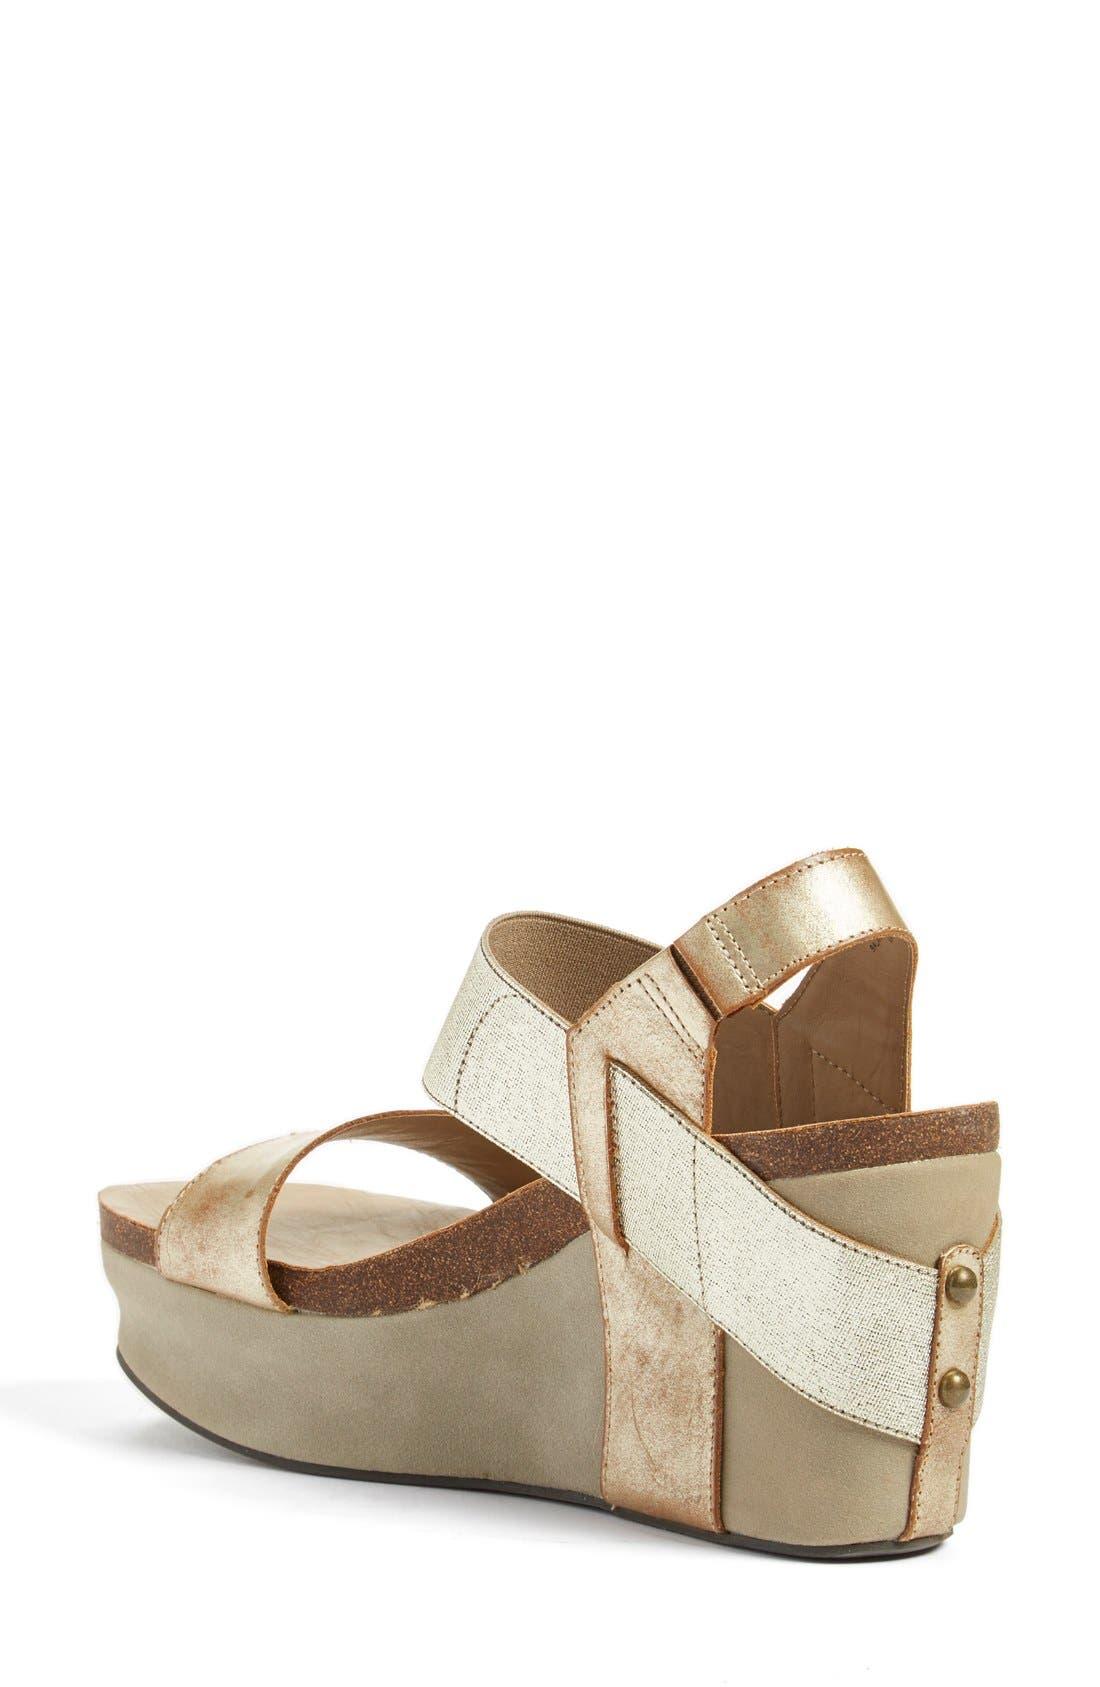 'Bushnell' Wedge Sandal,                             Alternate thumbnail 2, color,                             Gold